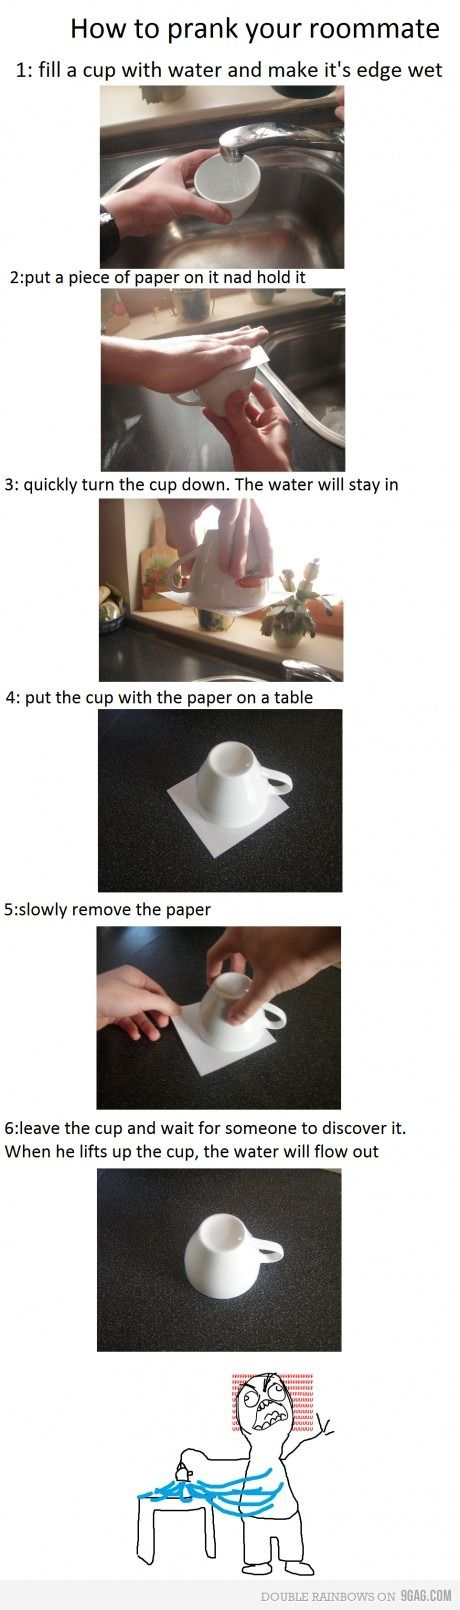 Lol who can I do this to that wouldn't murder me afterward?